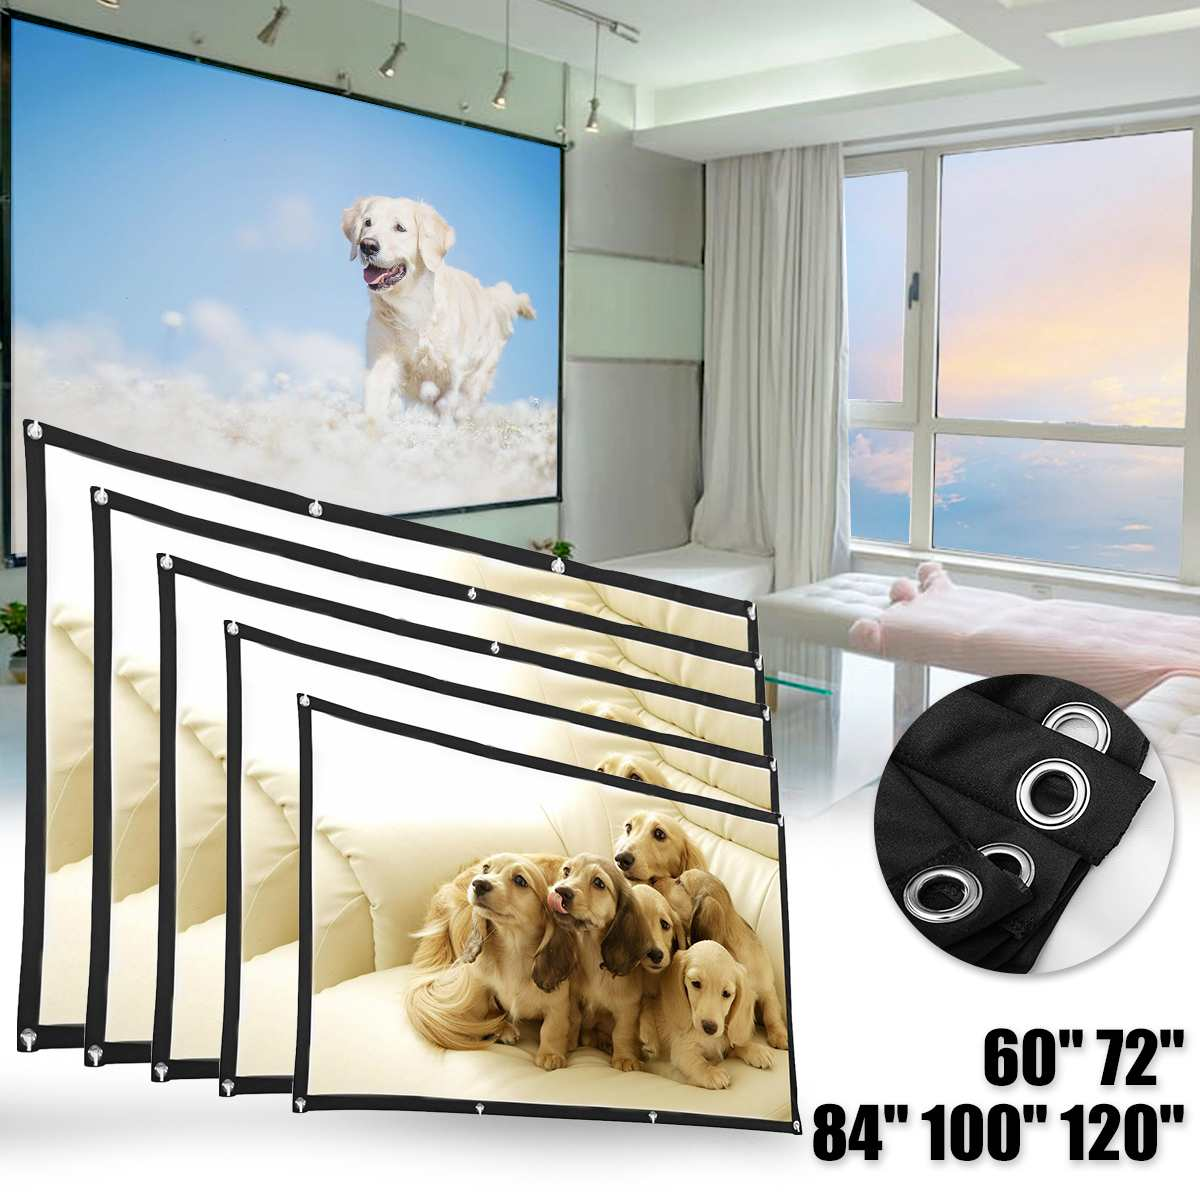 60 72 84 100 120 Inch Portable Foldable Projector Screen Wall Mounted Home Cinema Theater 3D HD Projection Screen Canvas